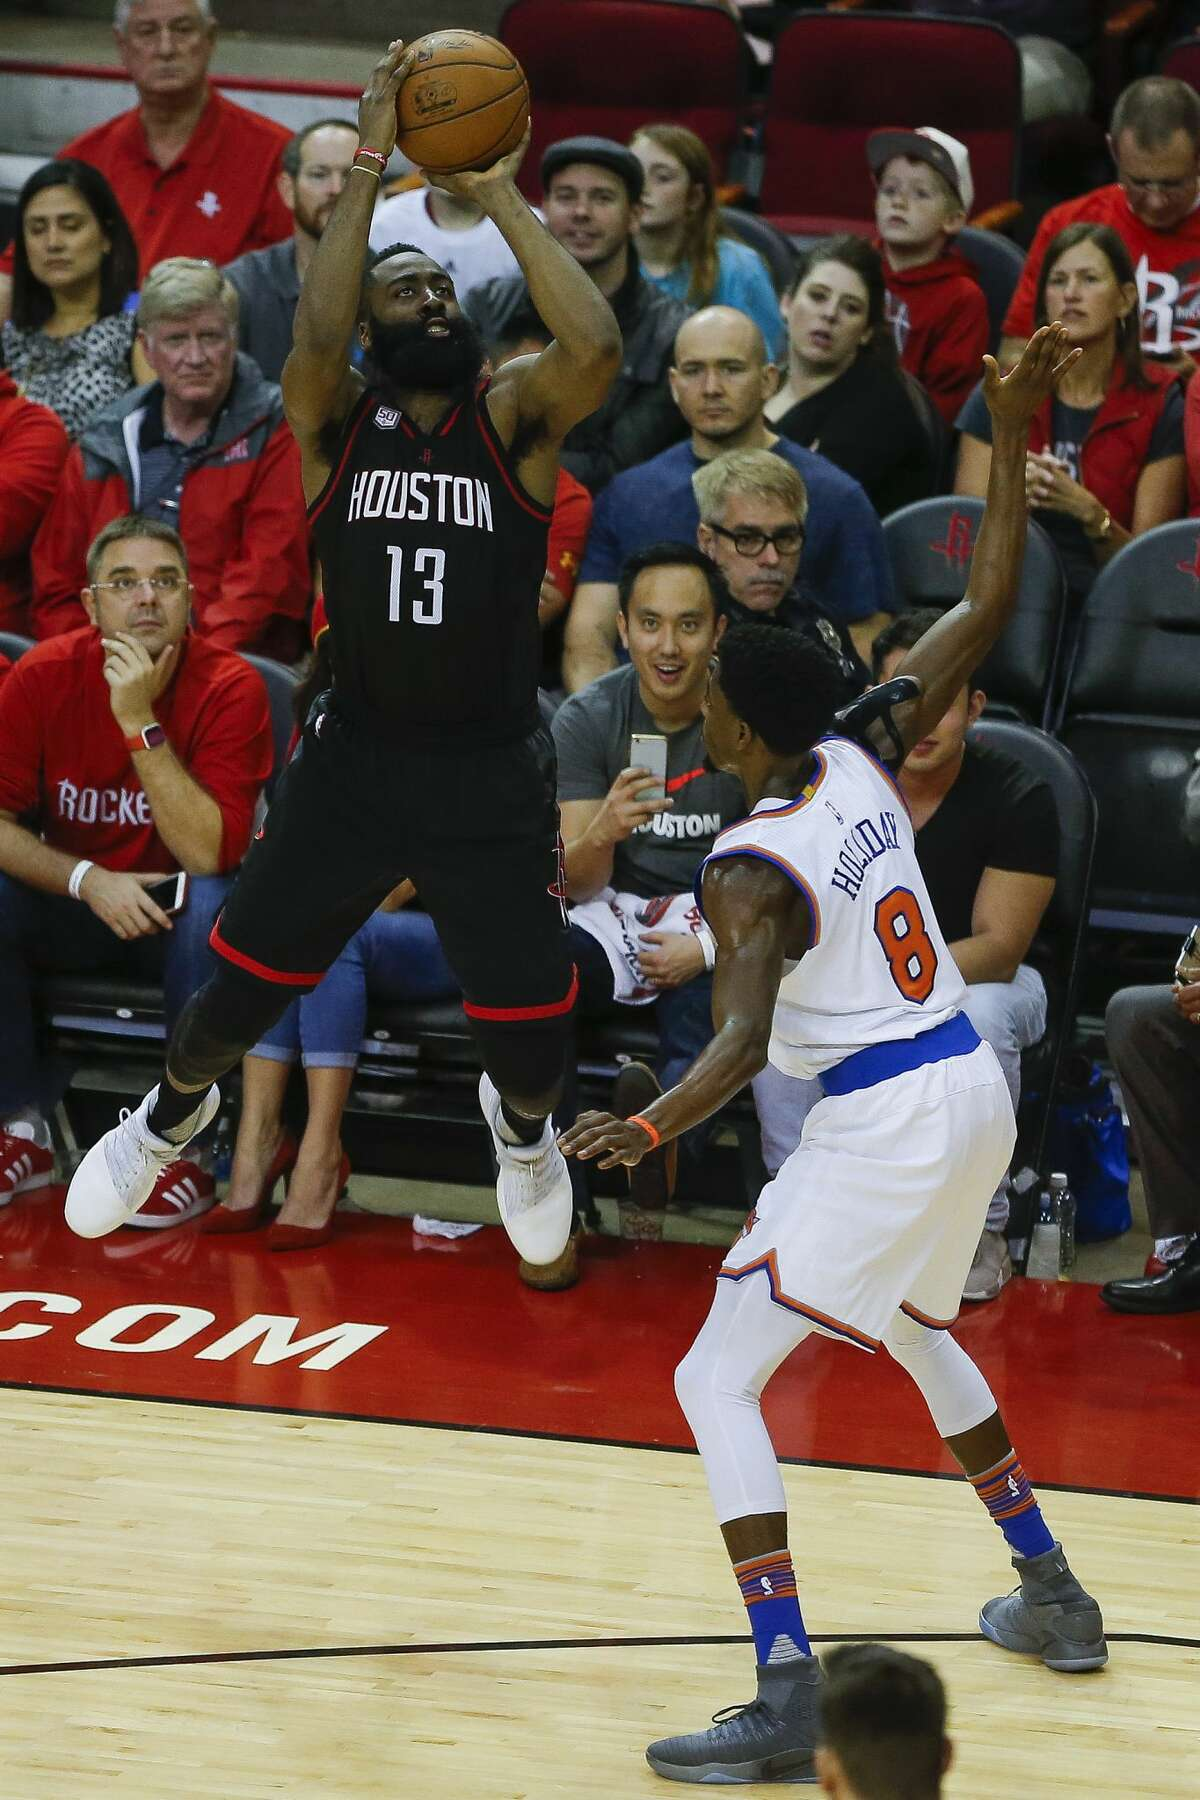 Houston Rockets guard James Harden (13) takes a shot as New York Knicks guard Justin Holiday (8) is called for a foul as the Houston Rockets take on the New York Knicks at the Toyota Center Saturday, Dec. 31, 2016 in Houston. ( Michael Ciaglo / Houston Chronicle )